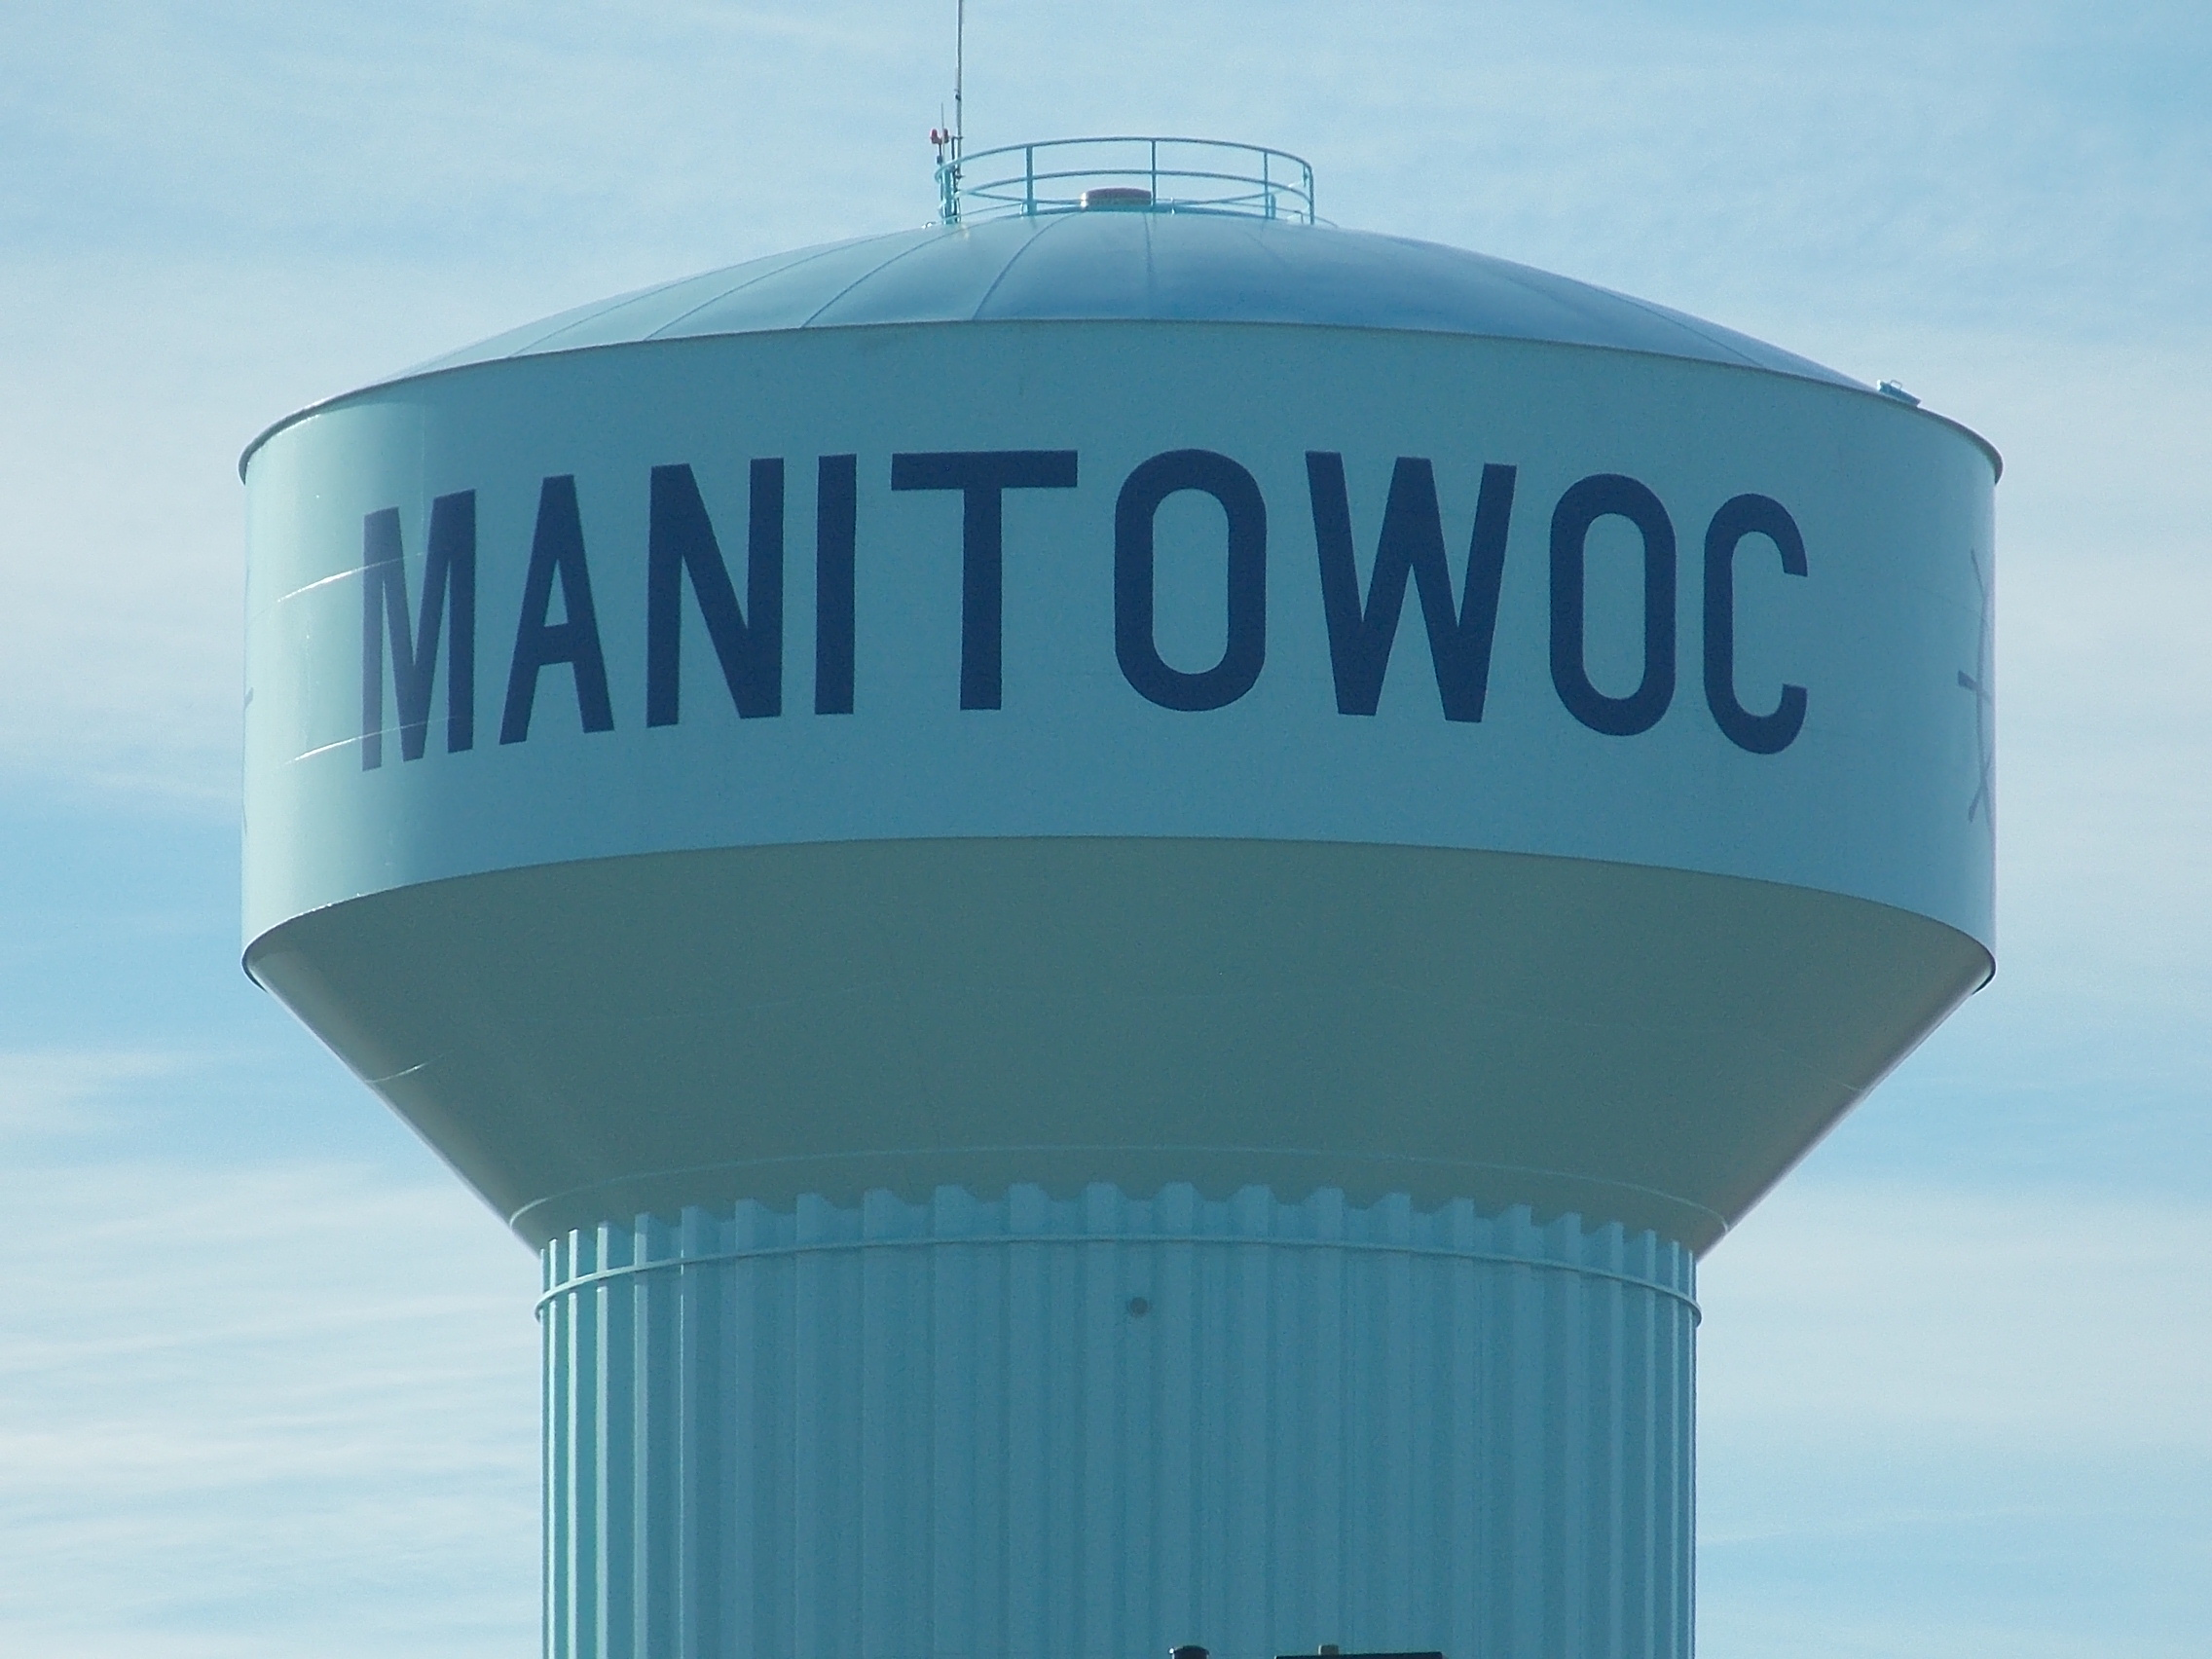 Manitowoc District 6 has New Polling Place